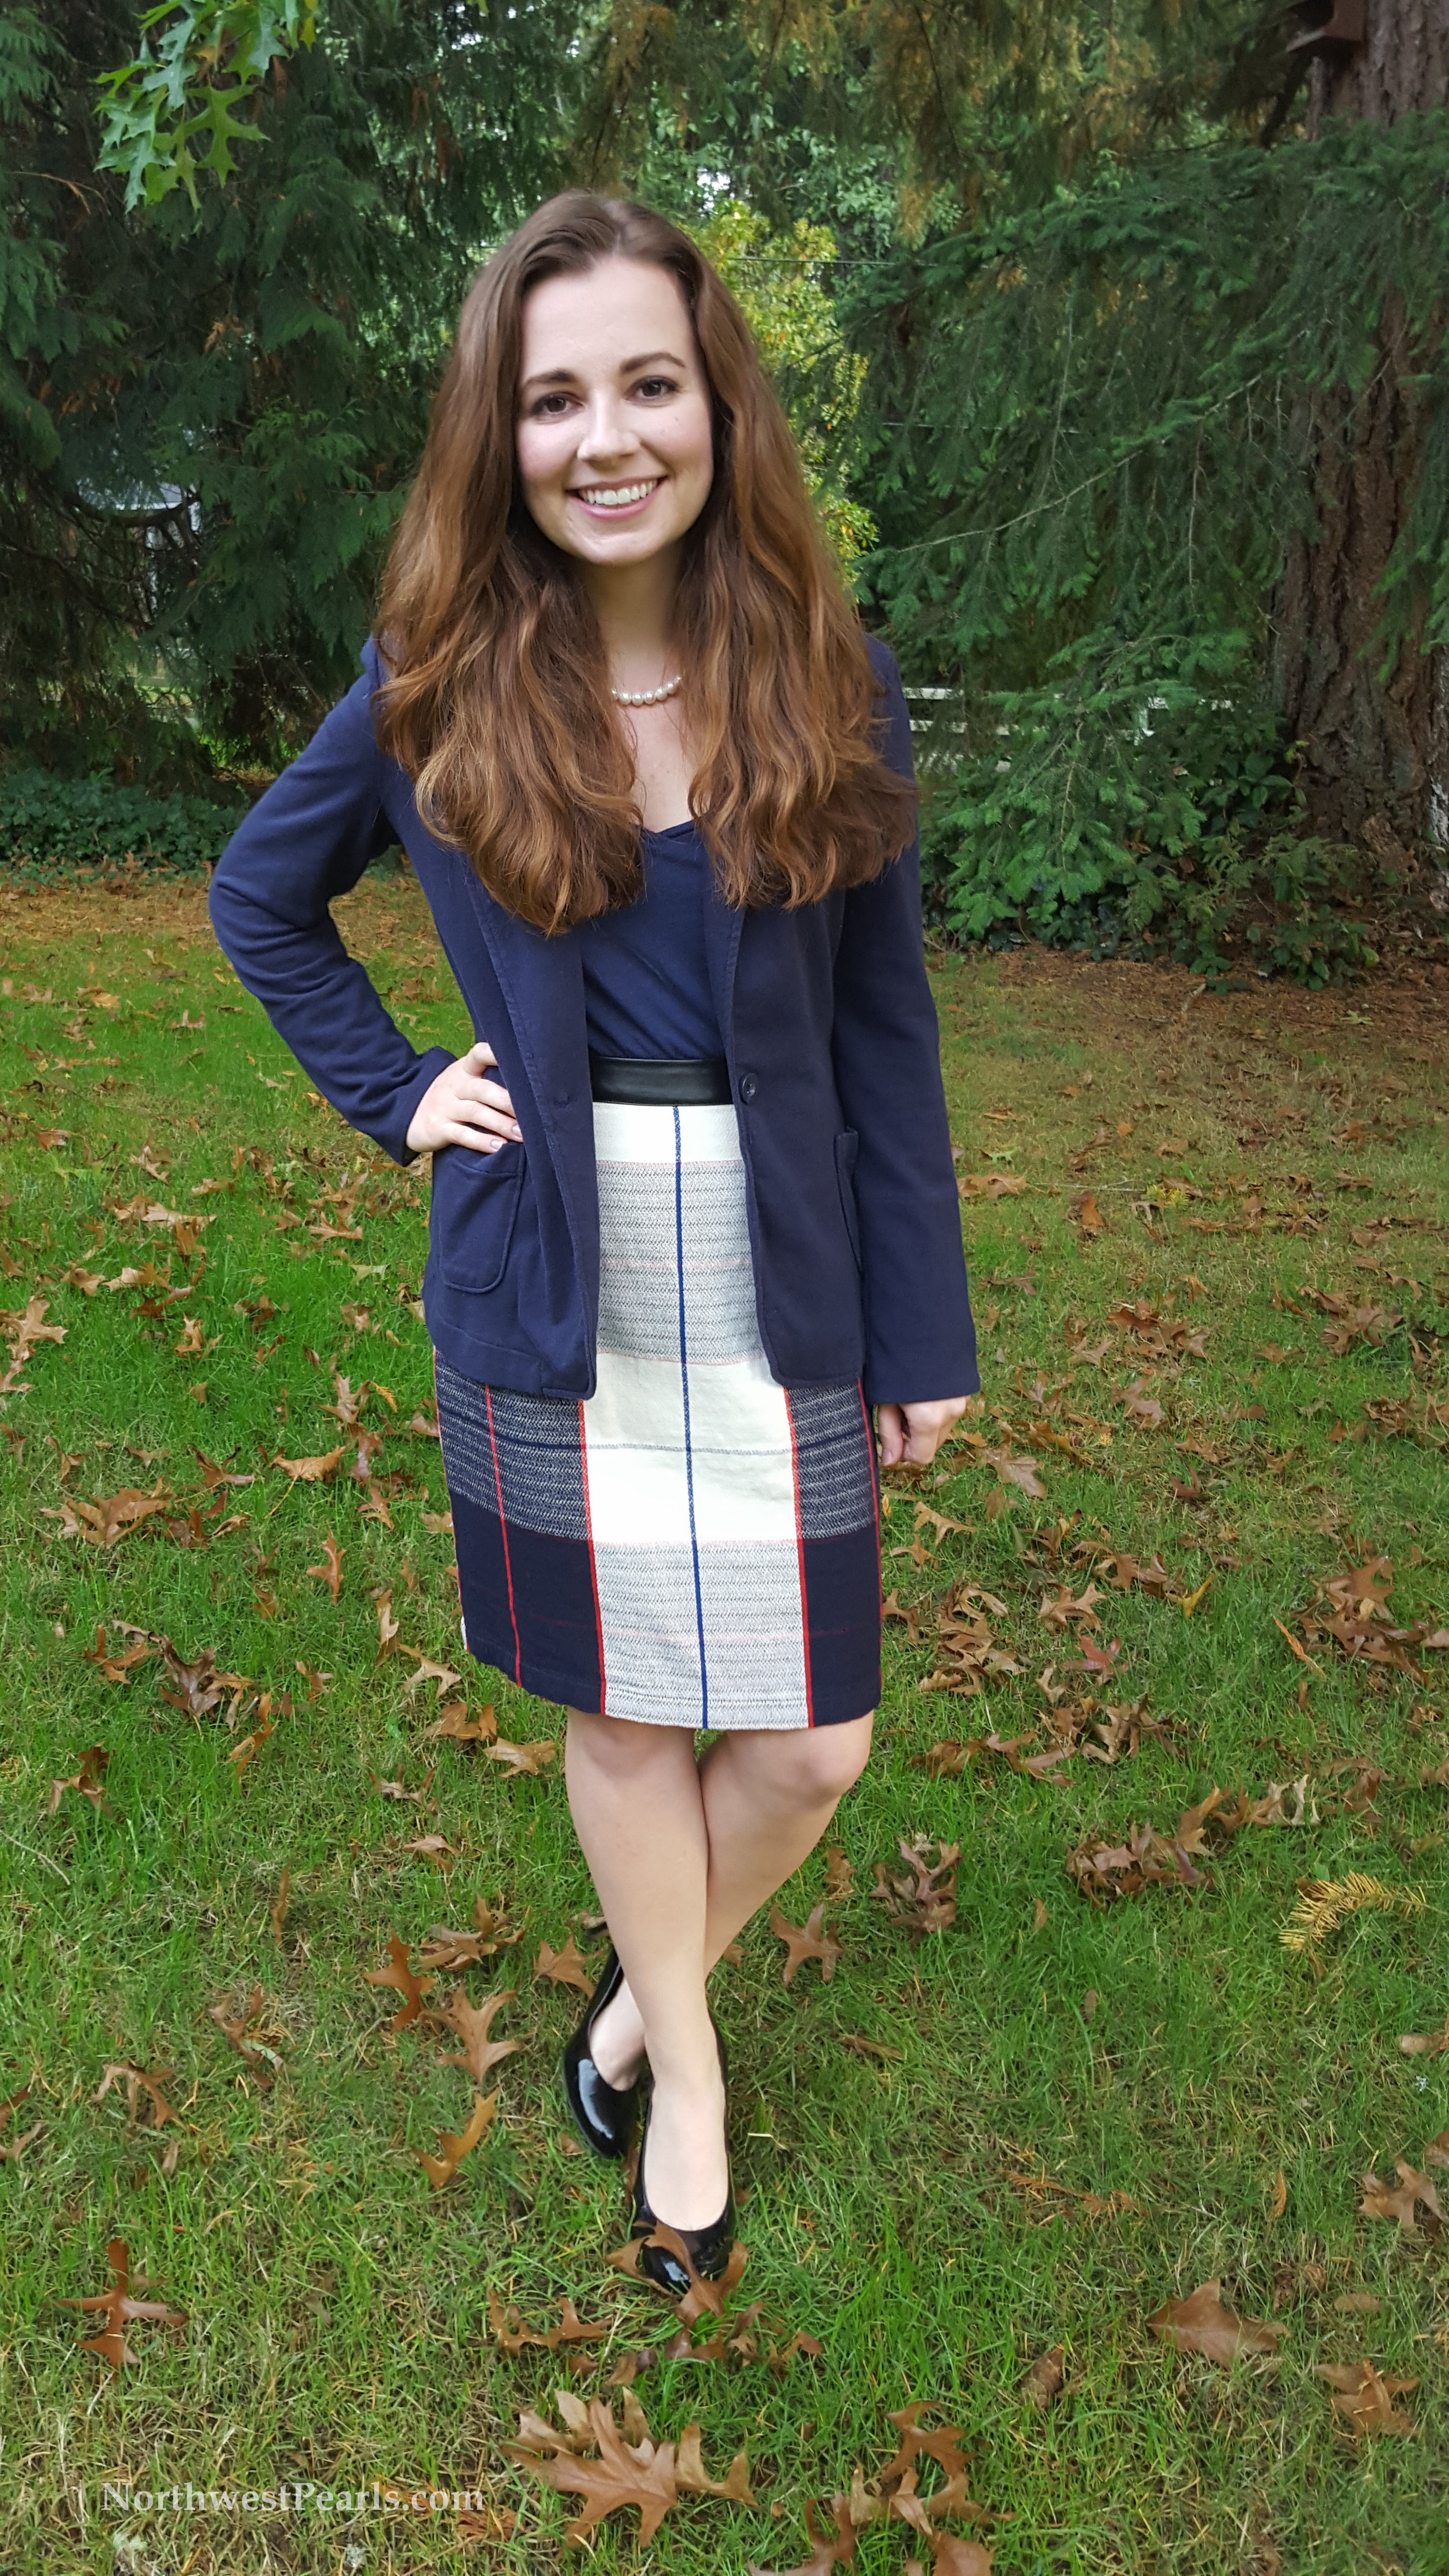 Northwest Pearls: Navy and Plaid